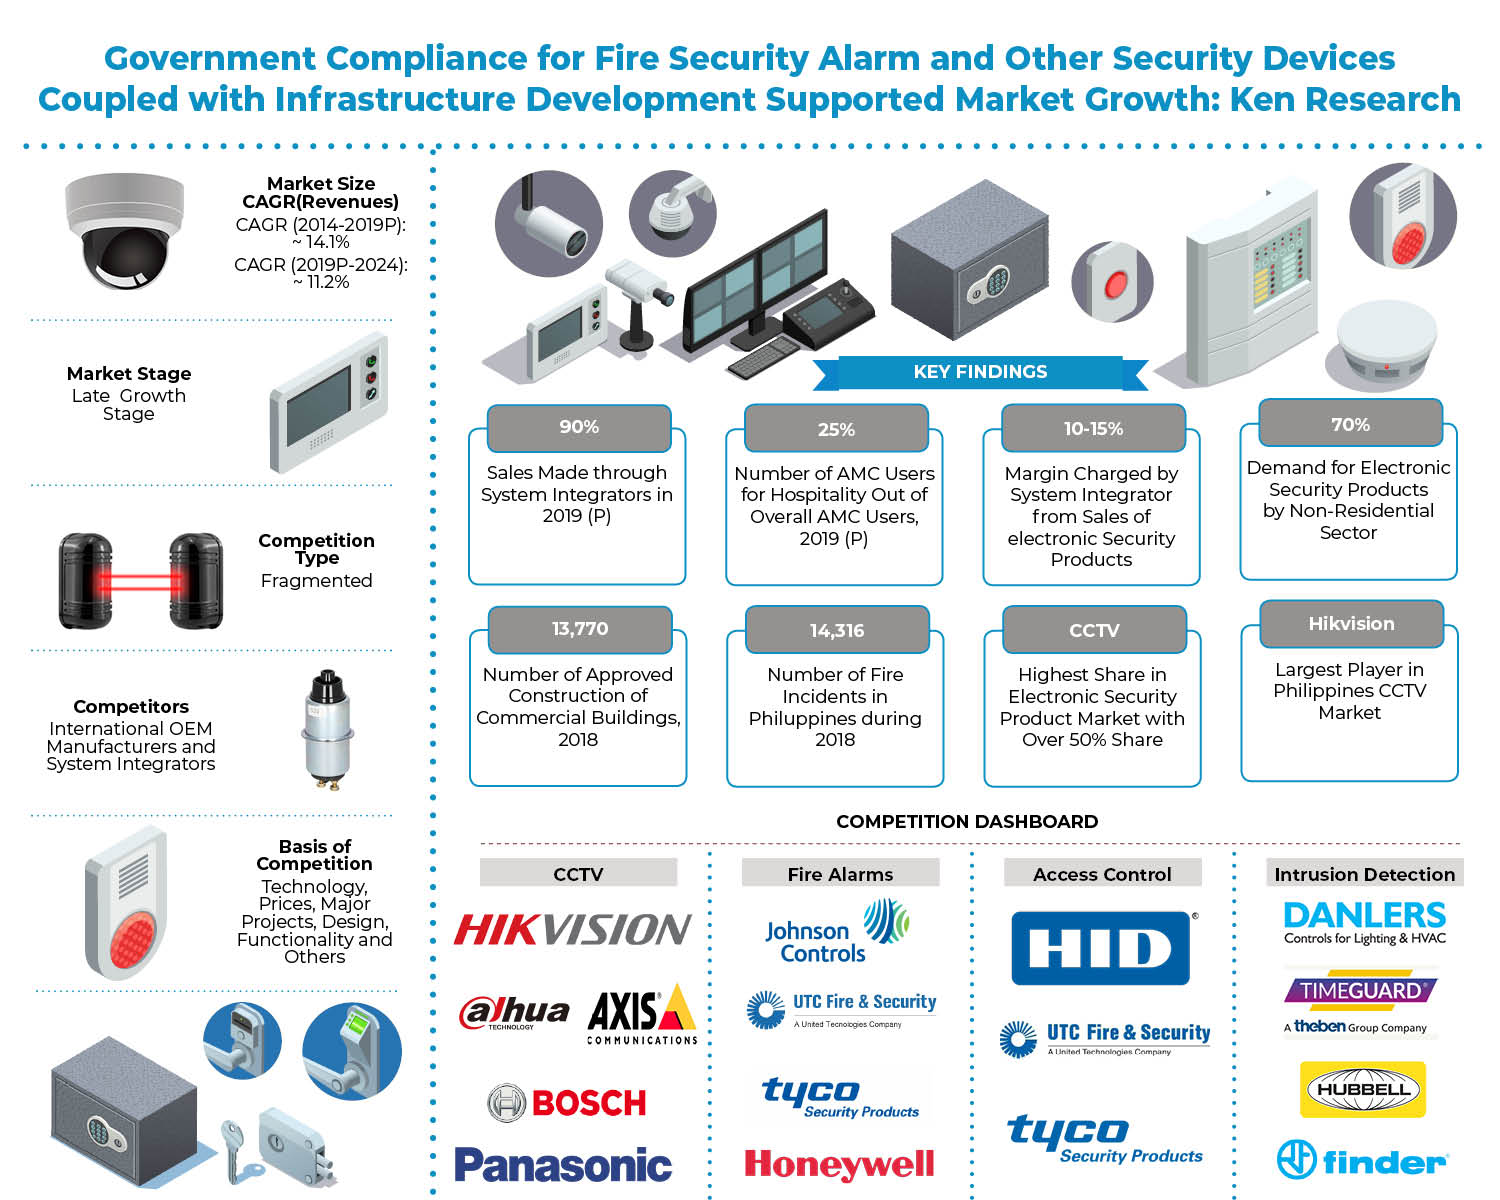 philippines-electronic-security-market-outlook-to-2024.jpg